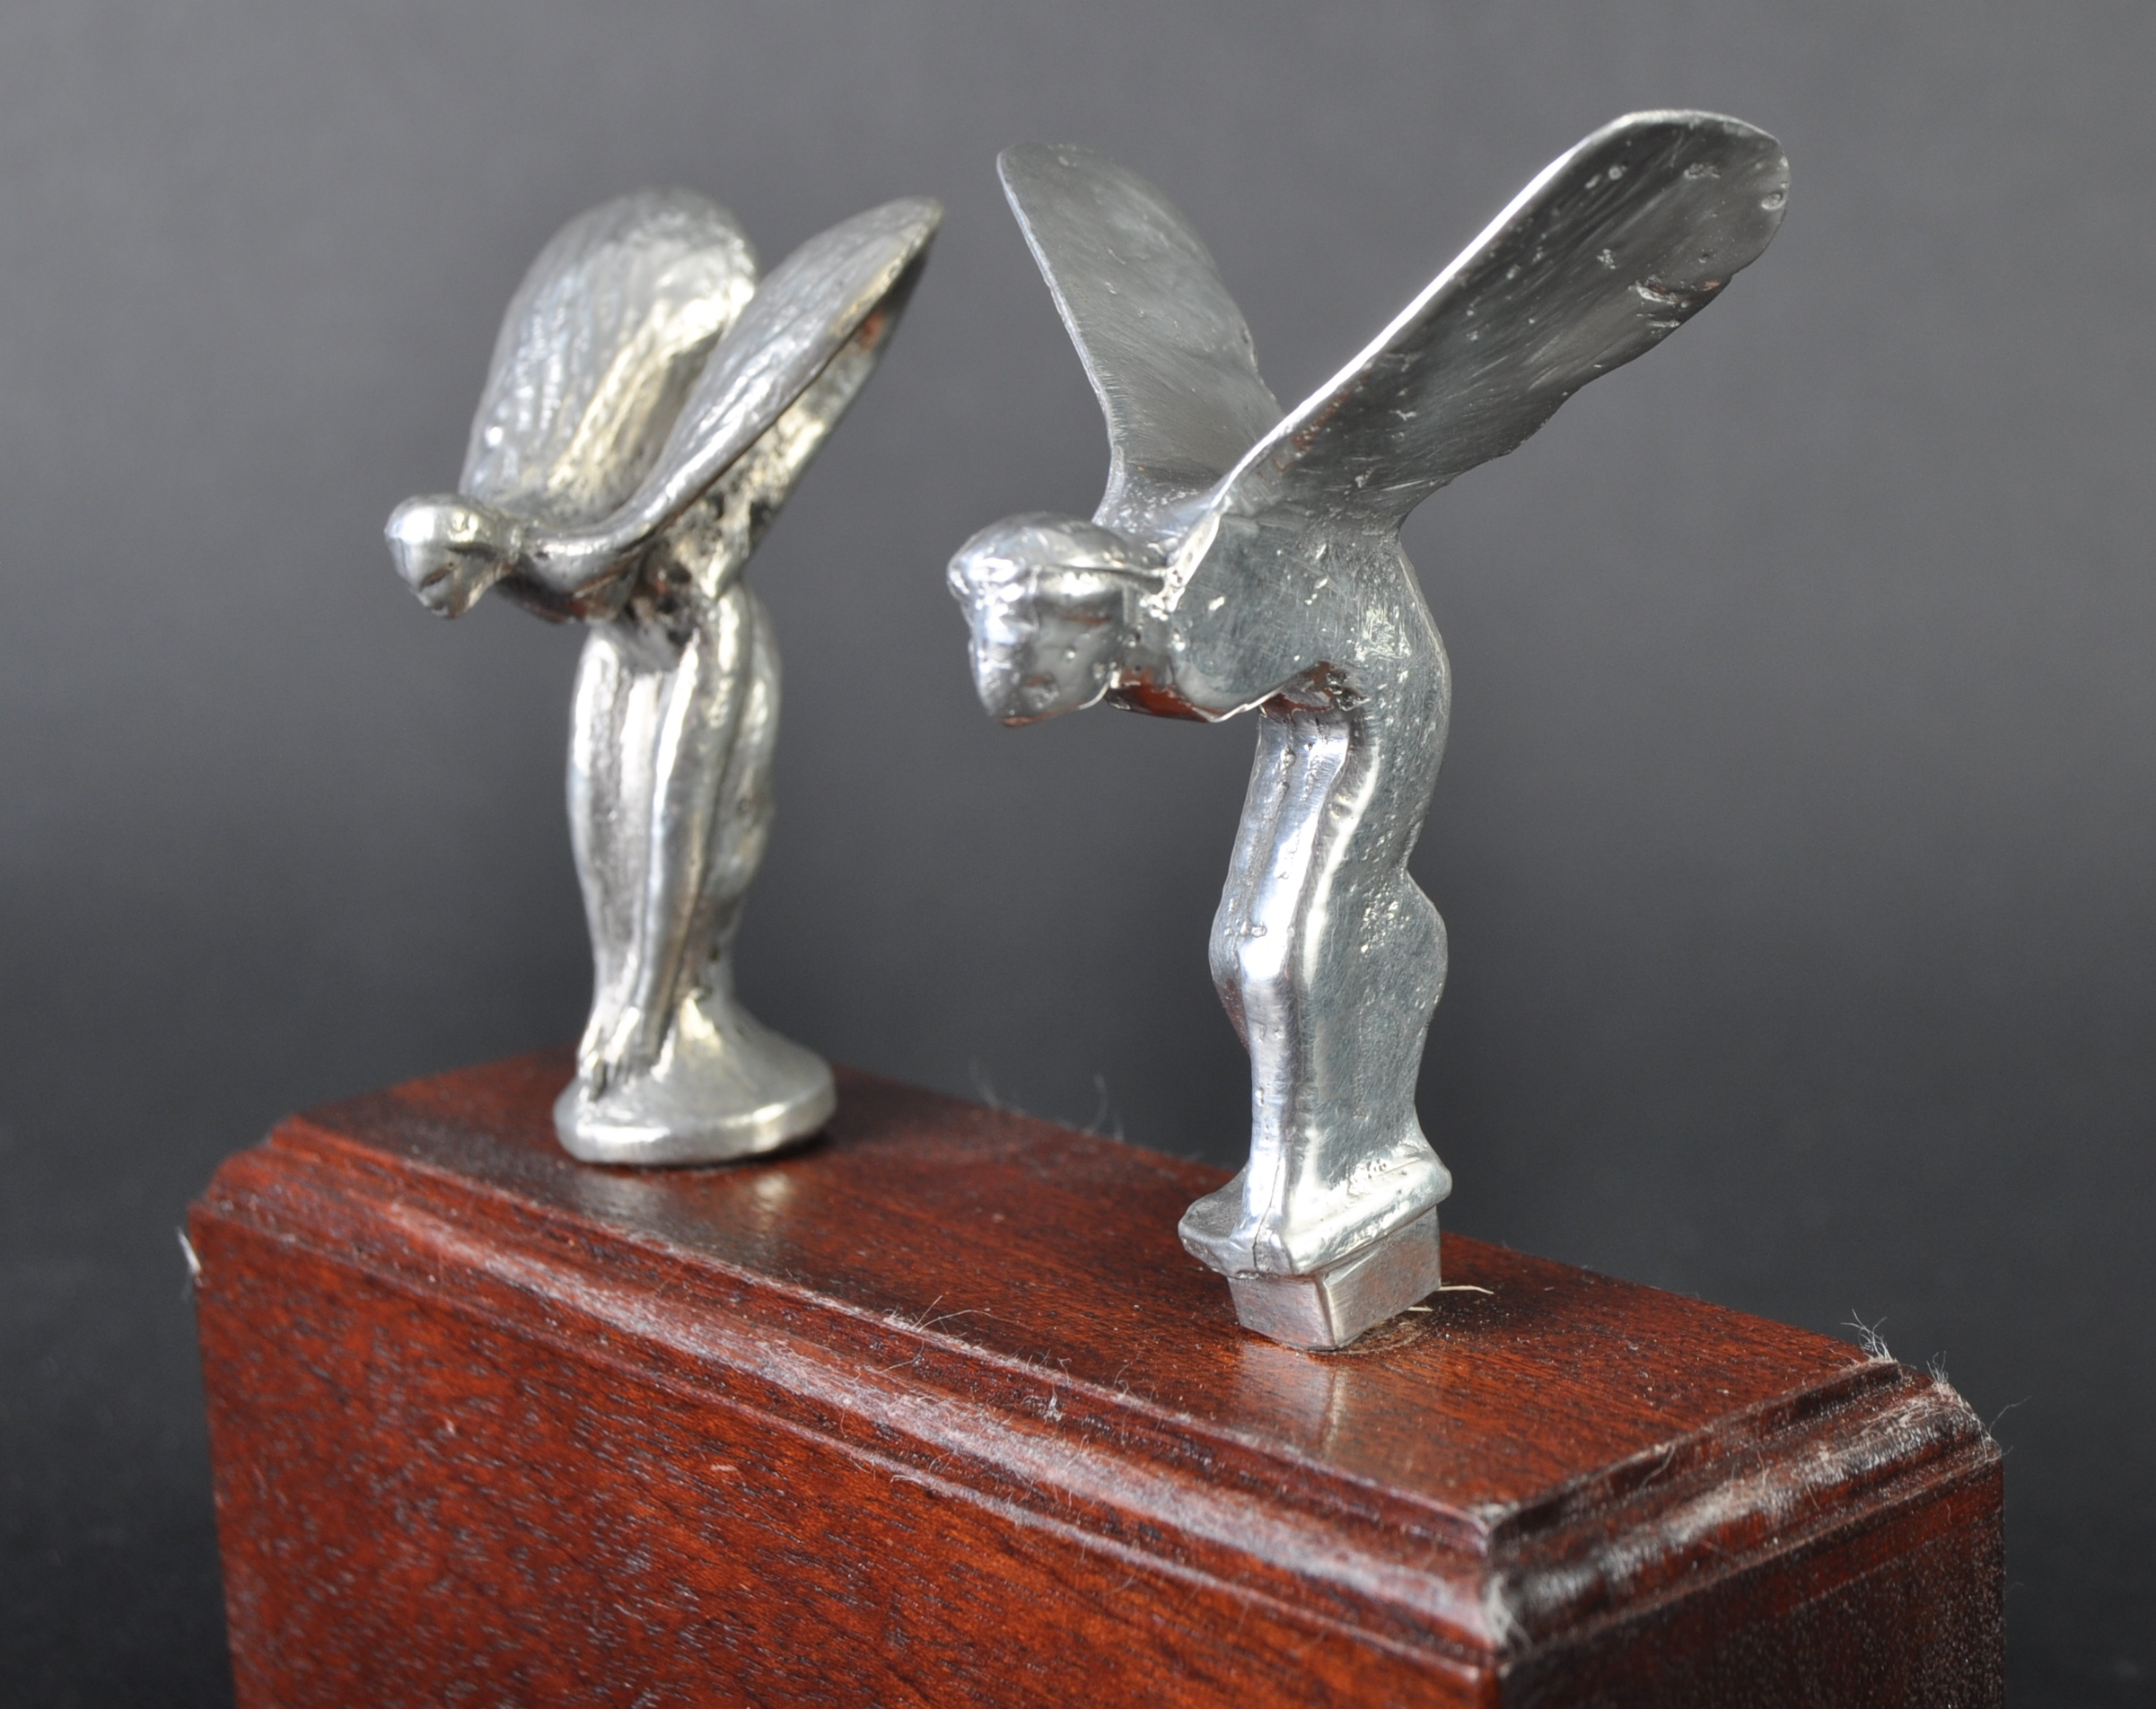 ROLLS ROYCE - SPIRIT OF ECSTASY - PEDAL CAR MASCOTS - Image 2 of 4